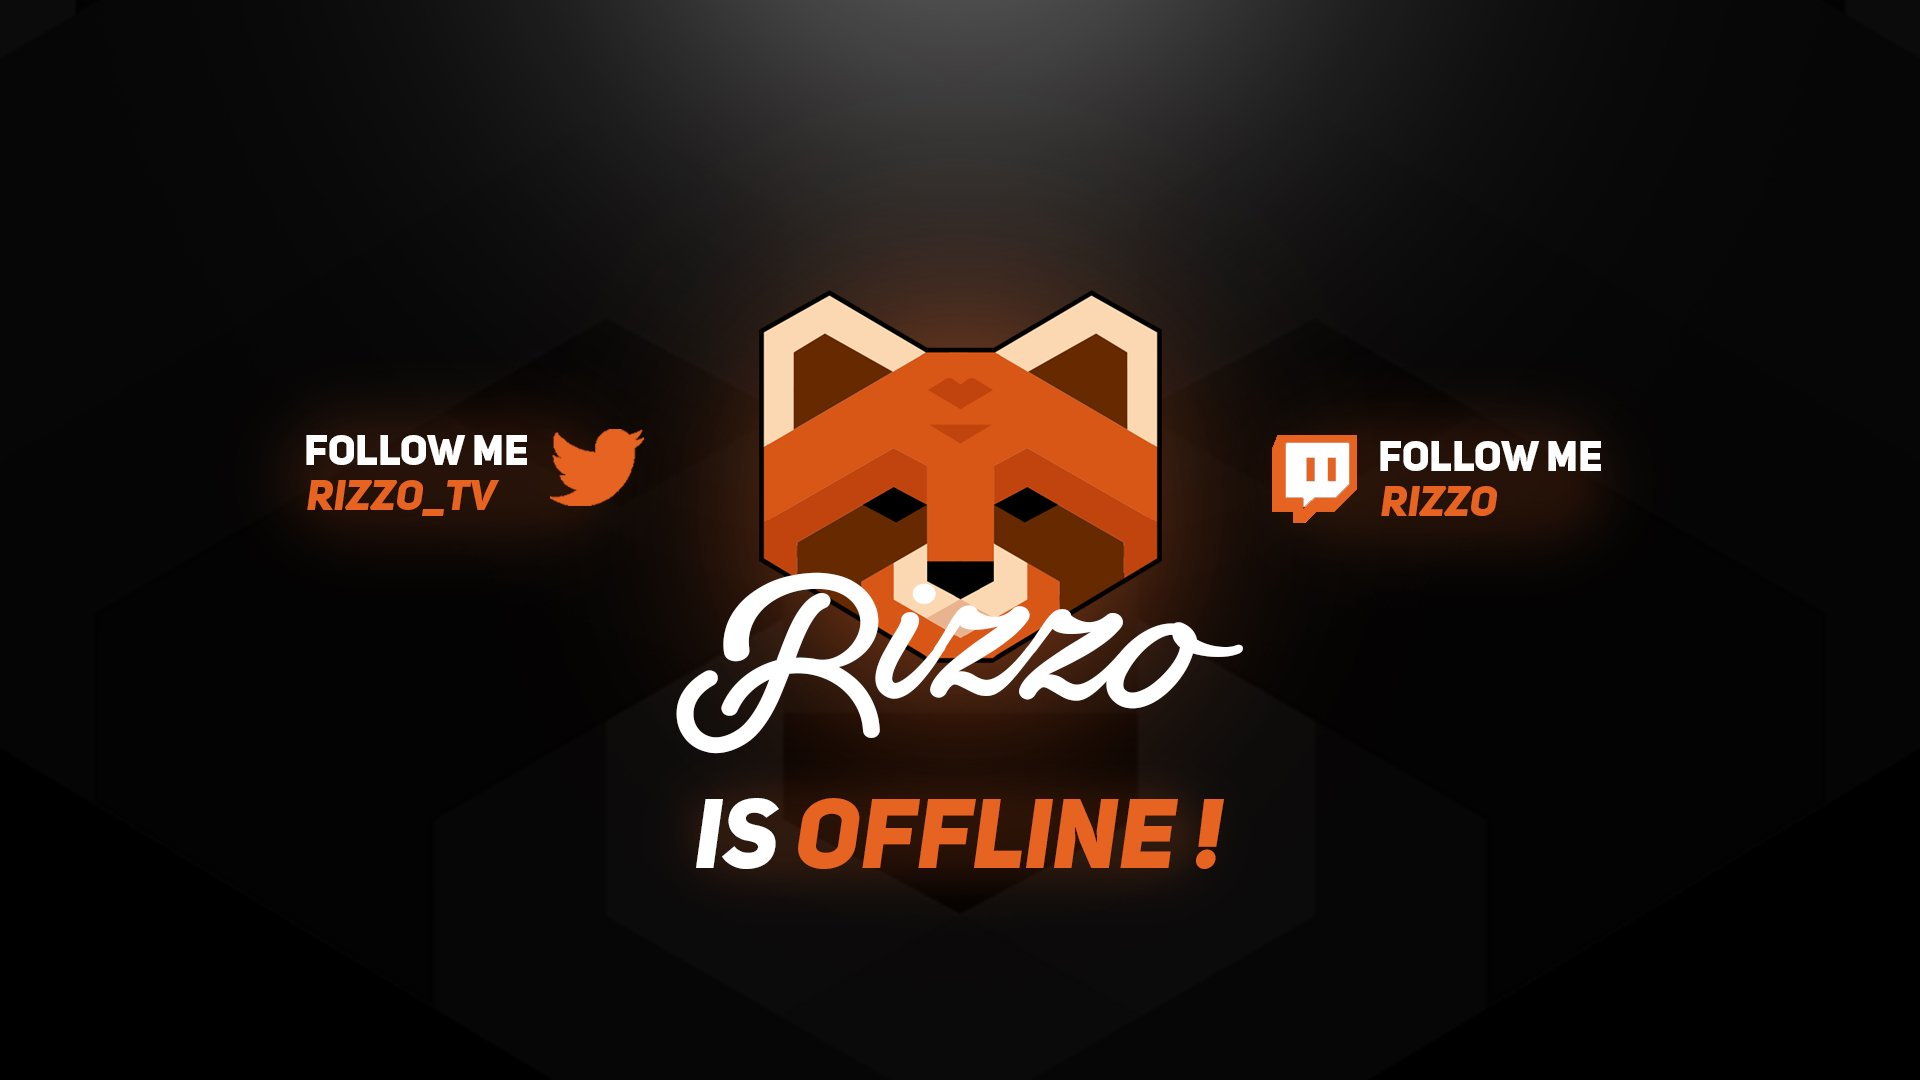 Twitch stream of Rizzo